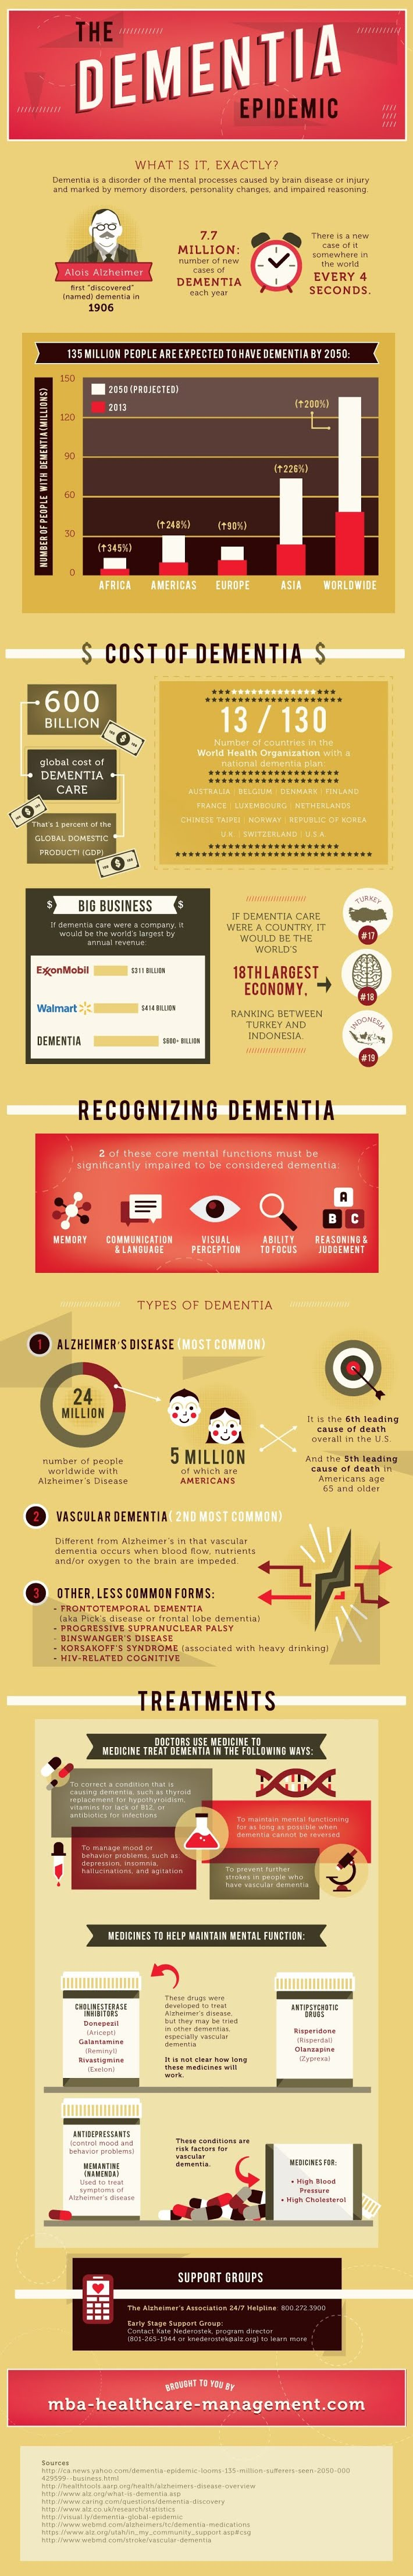 The Dementia Epidemic #infographic